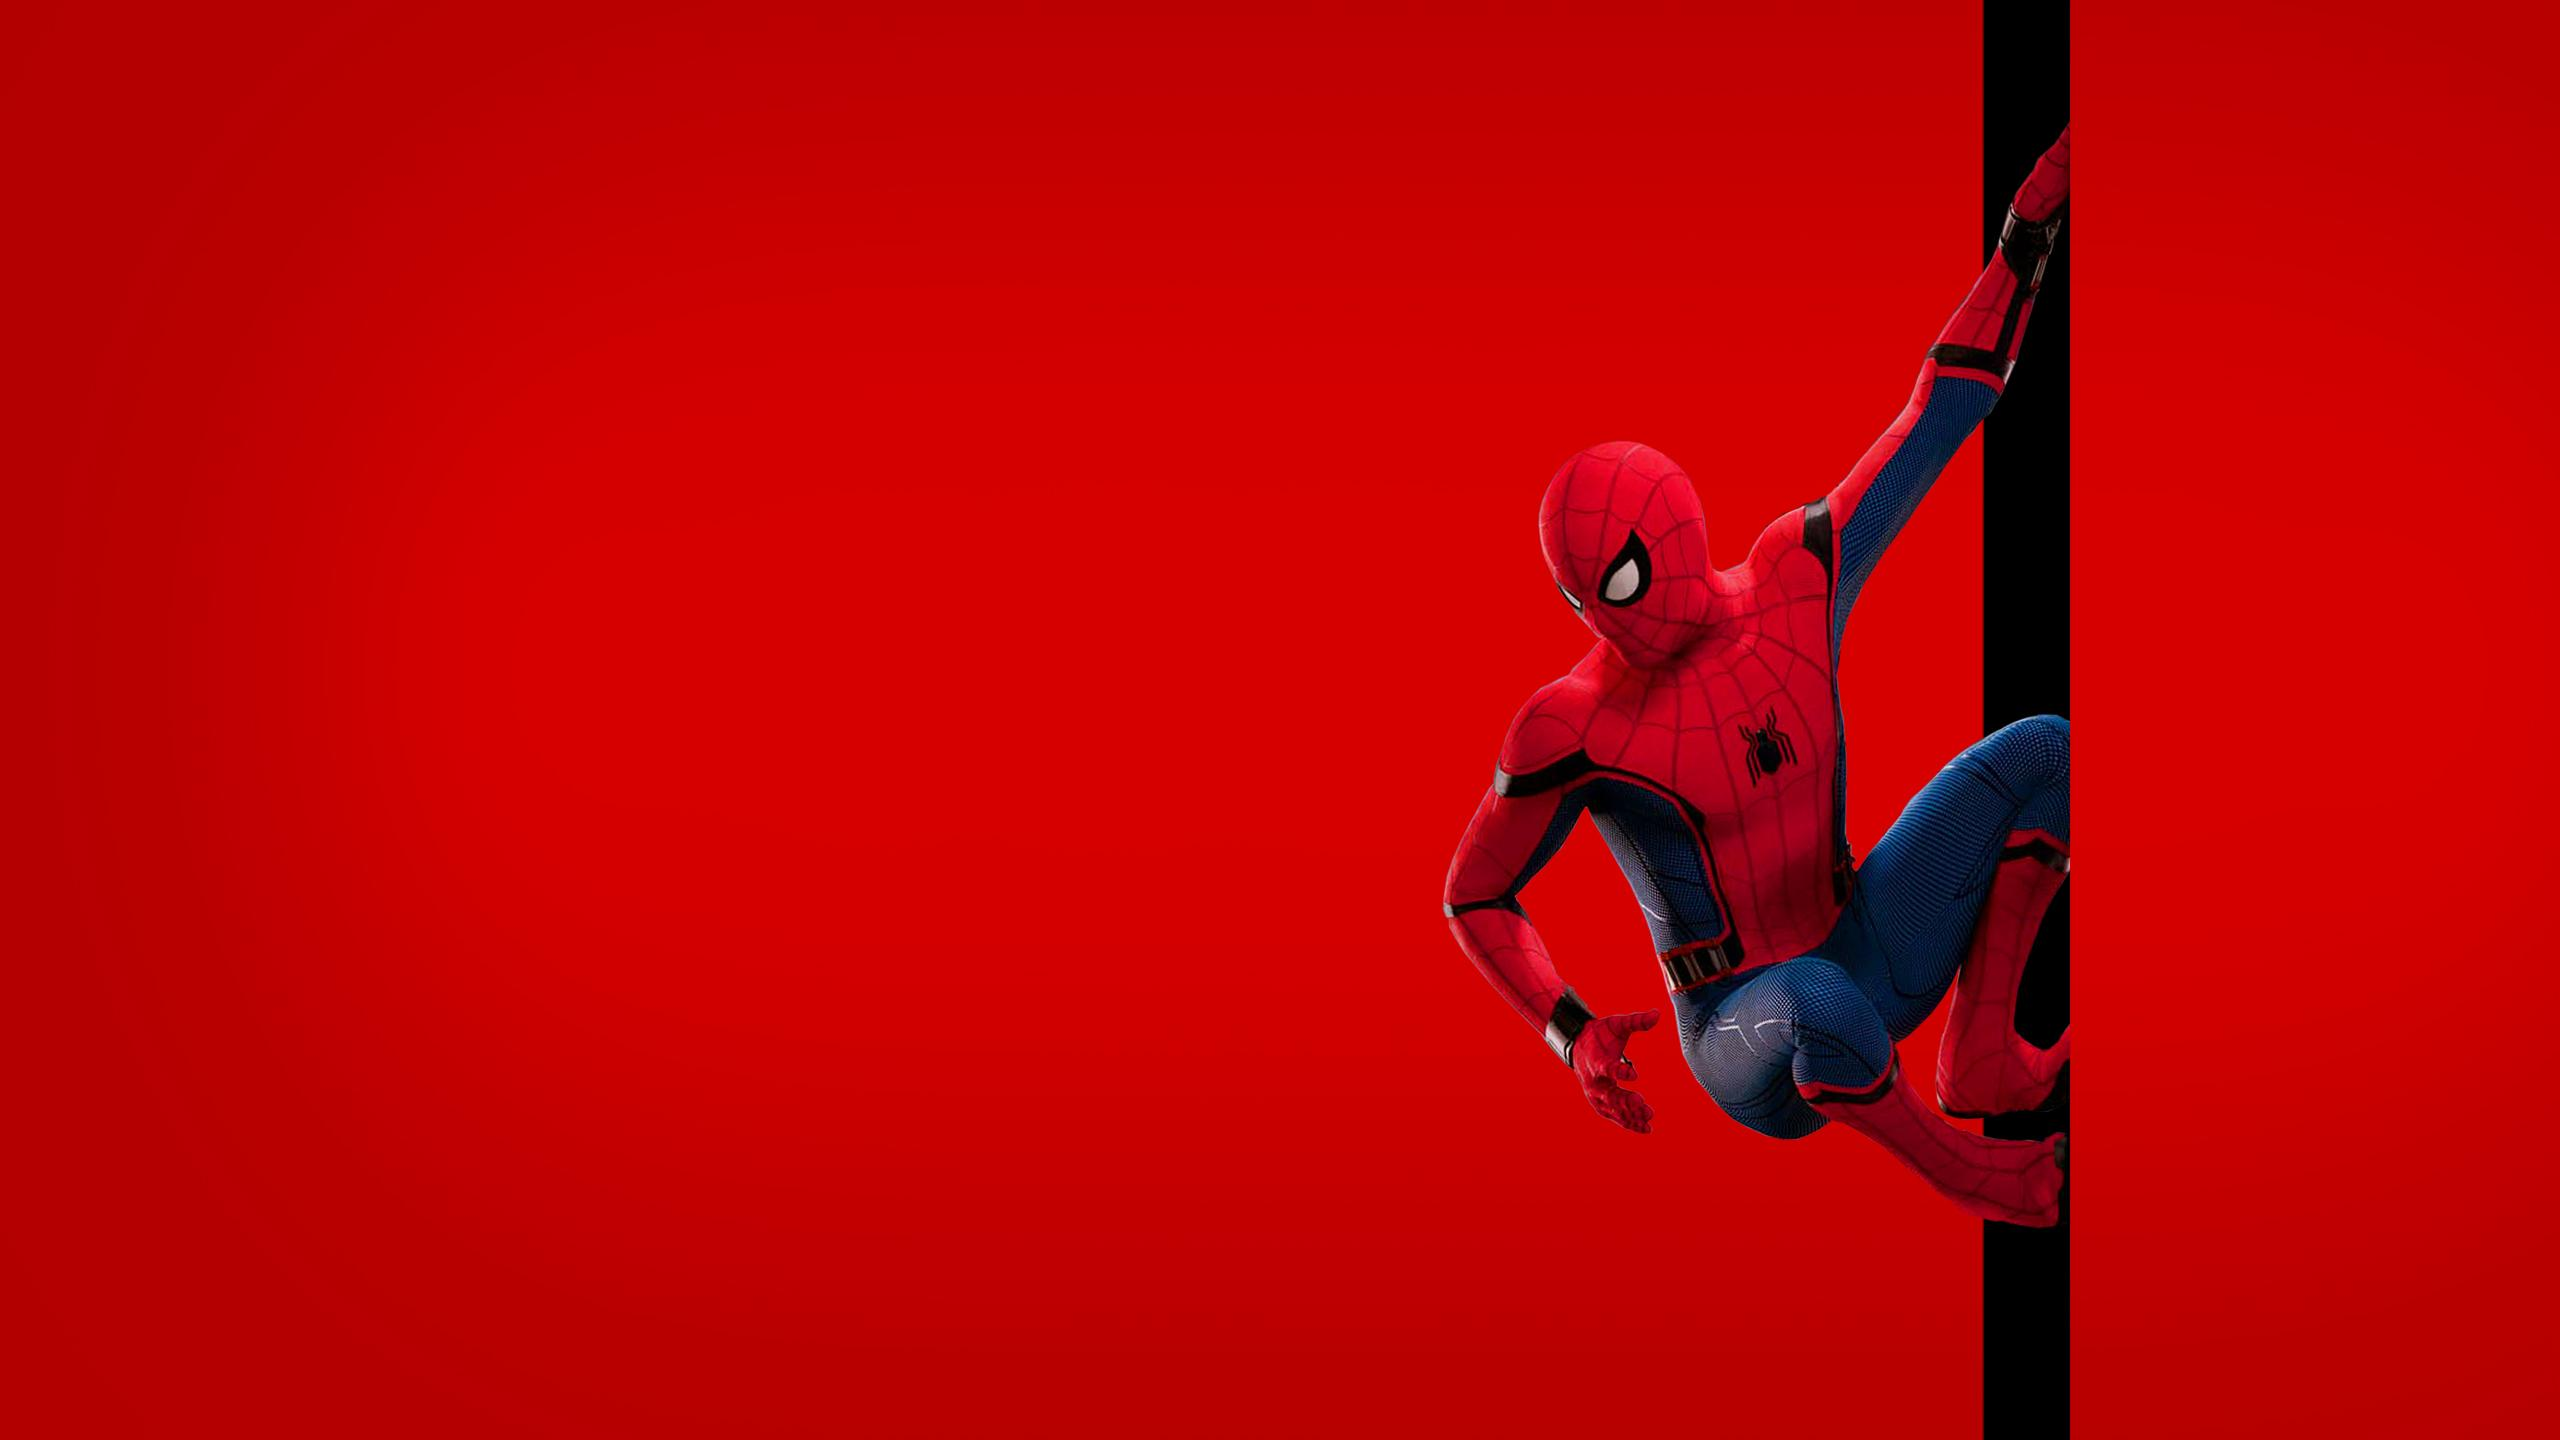 Best Movie Spiderman Wallpapers 2019 Wallpapers